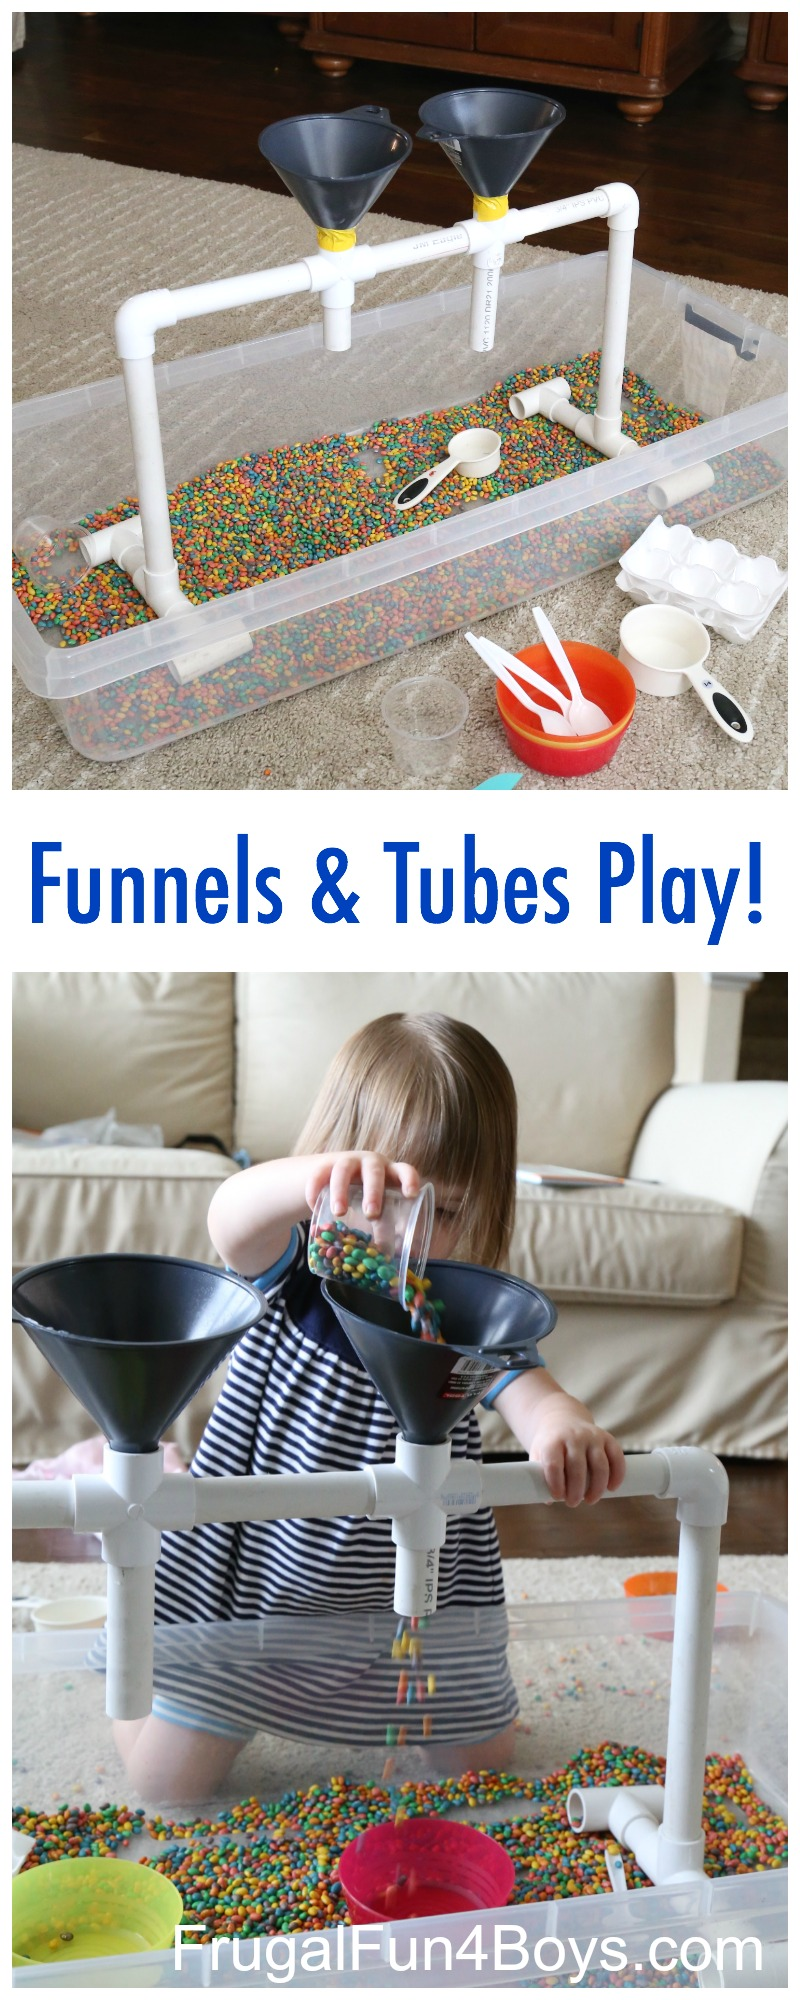 Funnels and Tubes Sensory Play with Colored Beans